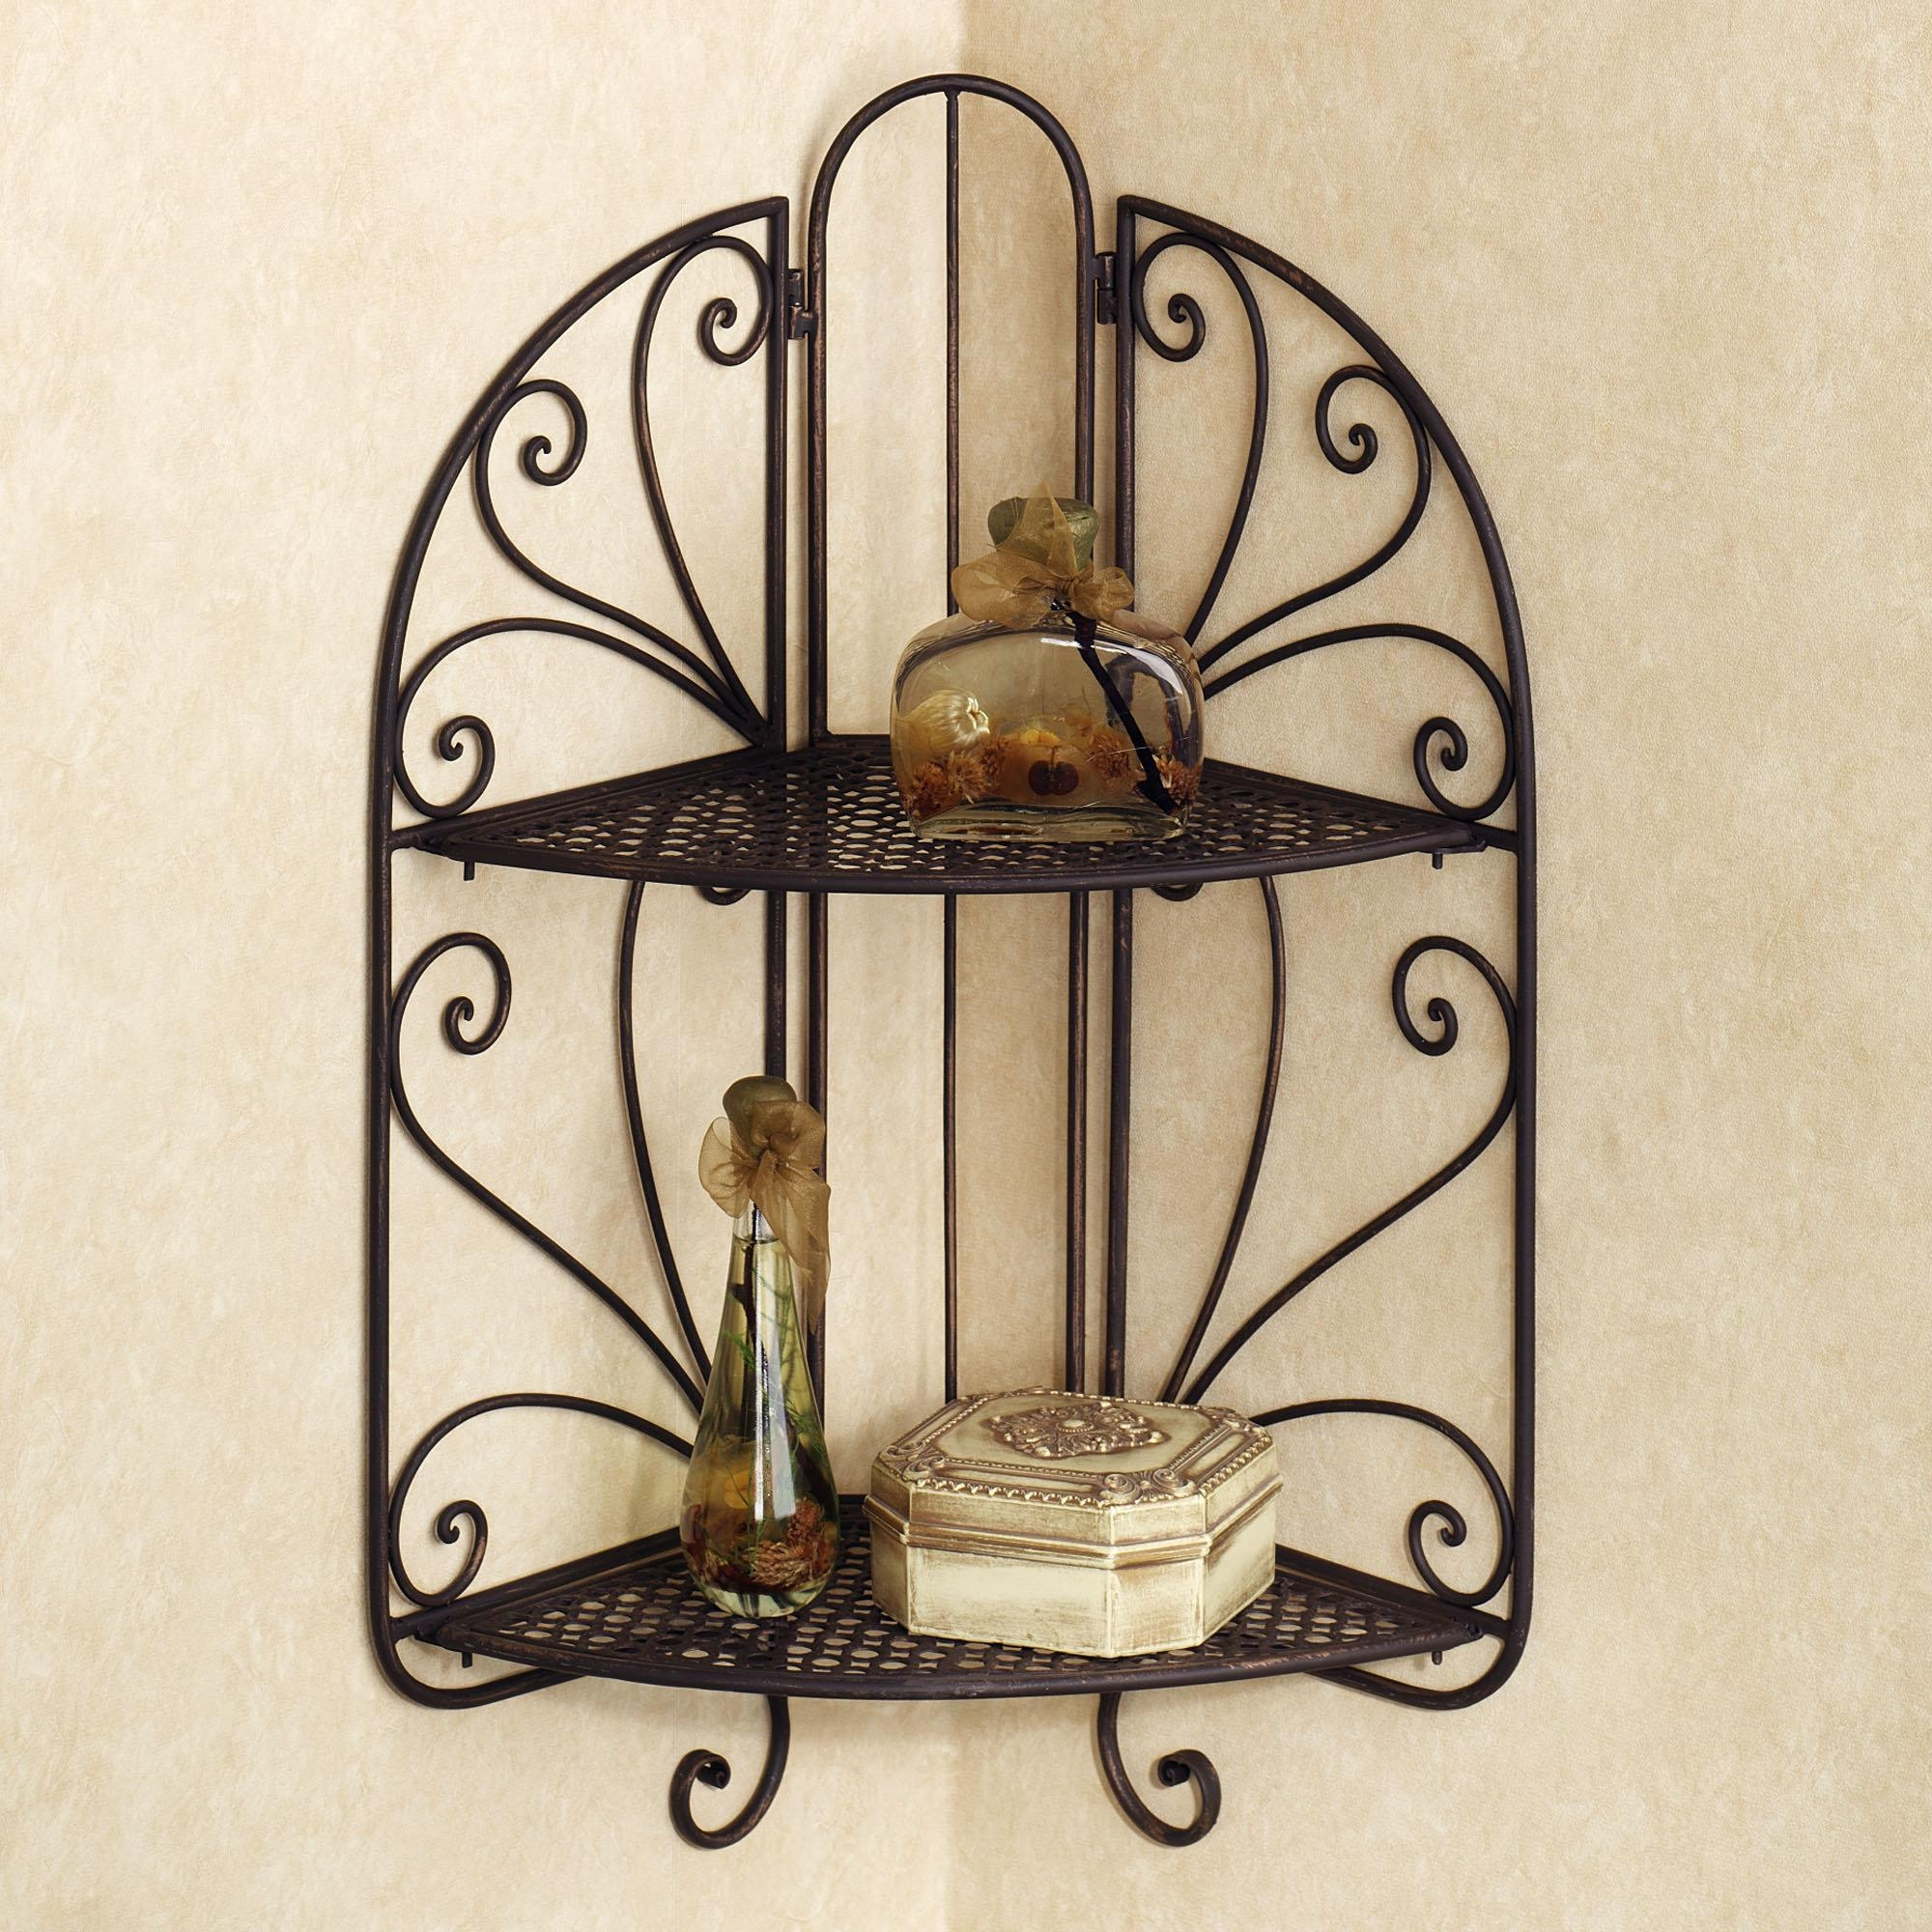 3D Wall Decor Increasing Your Artistic Sense | The Latest Home With Faux Wrought Iron Wall Decors (Image 1 of 20)